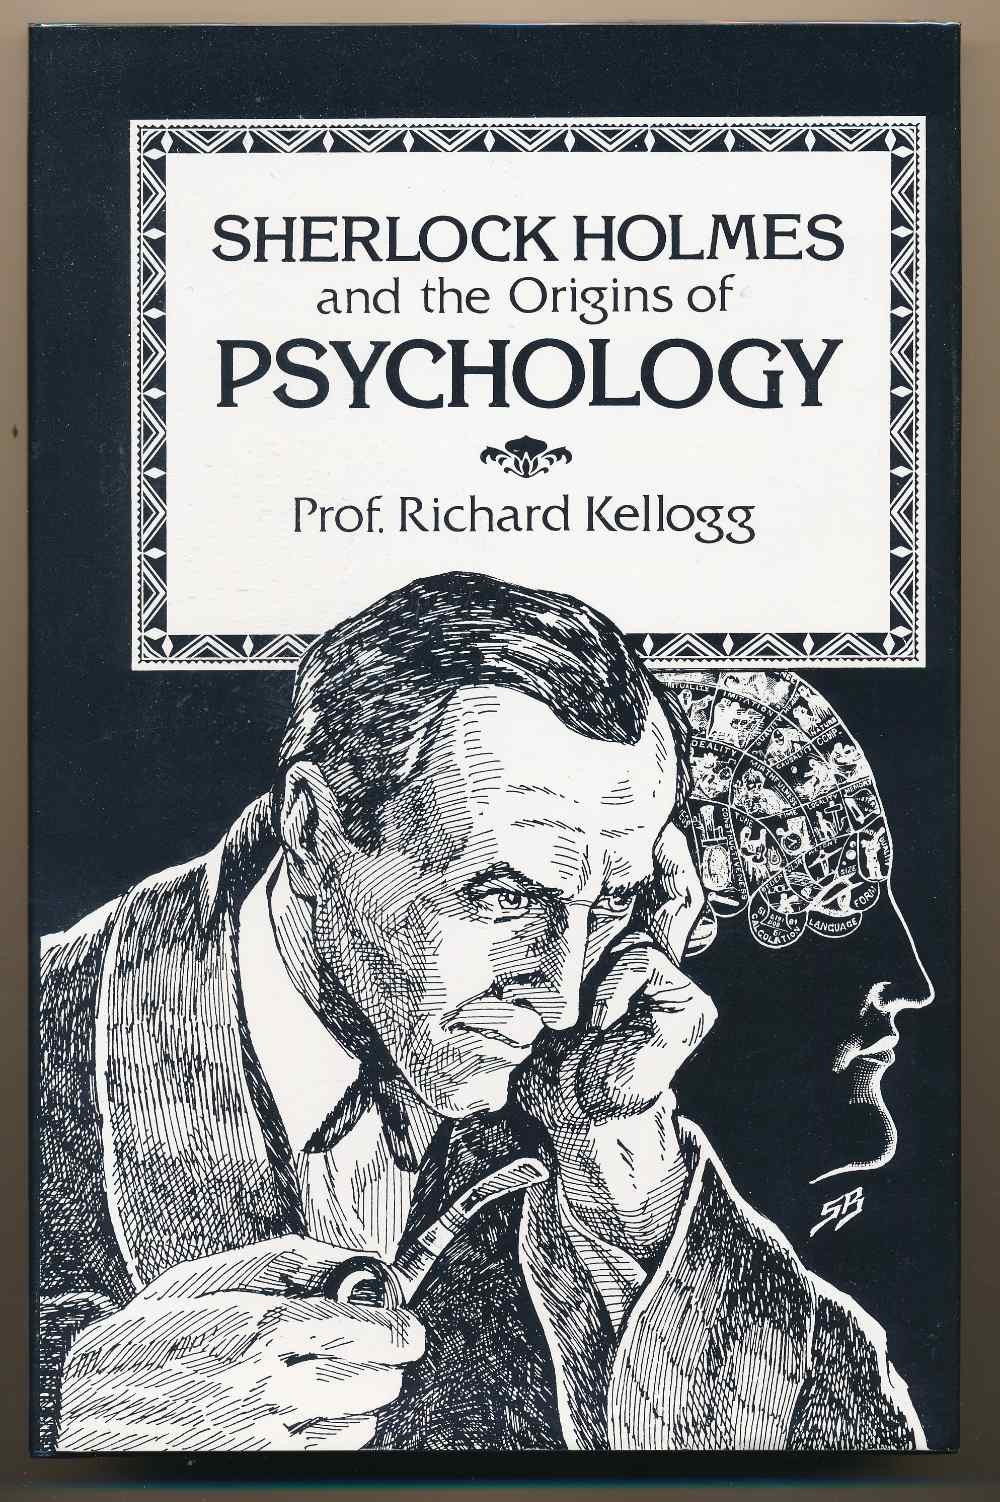 Sherlock Holmes and the origins of psychology